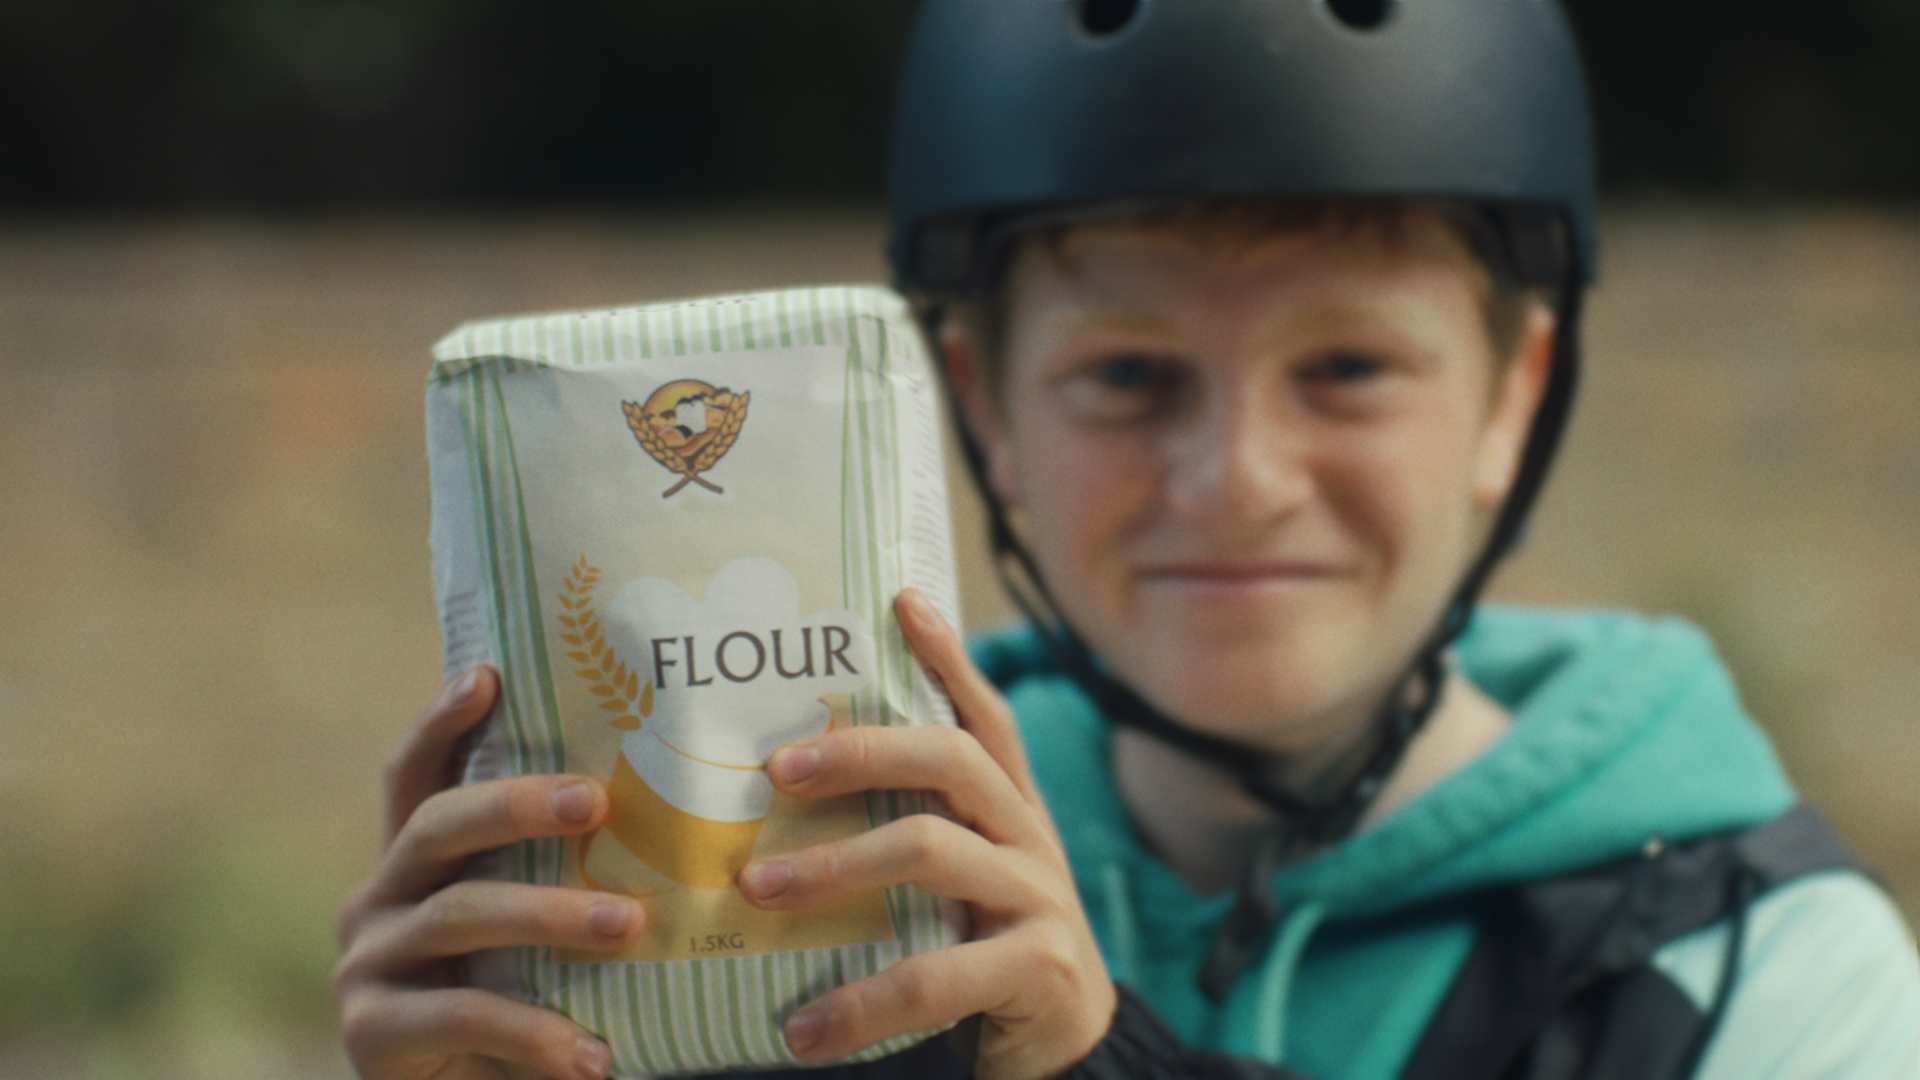 A still from the Great British Bake Off (GBBO) 2020 trailer shows a boy clutching a precious bag of four